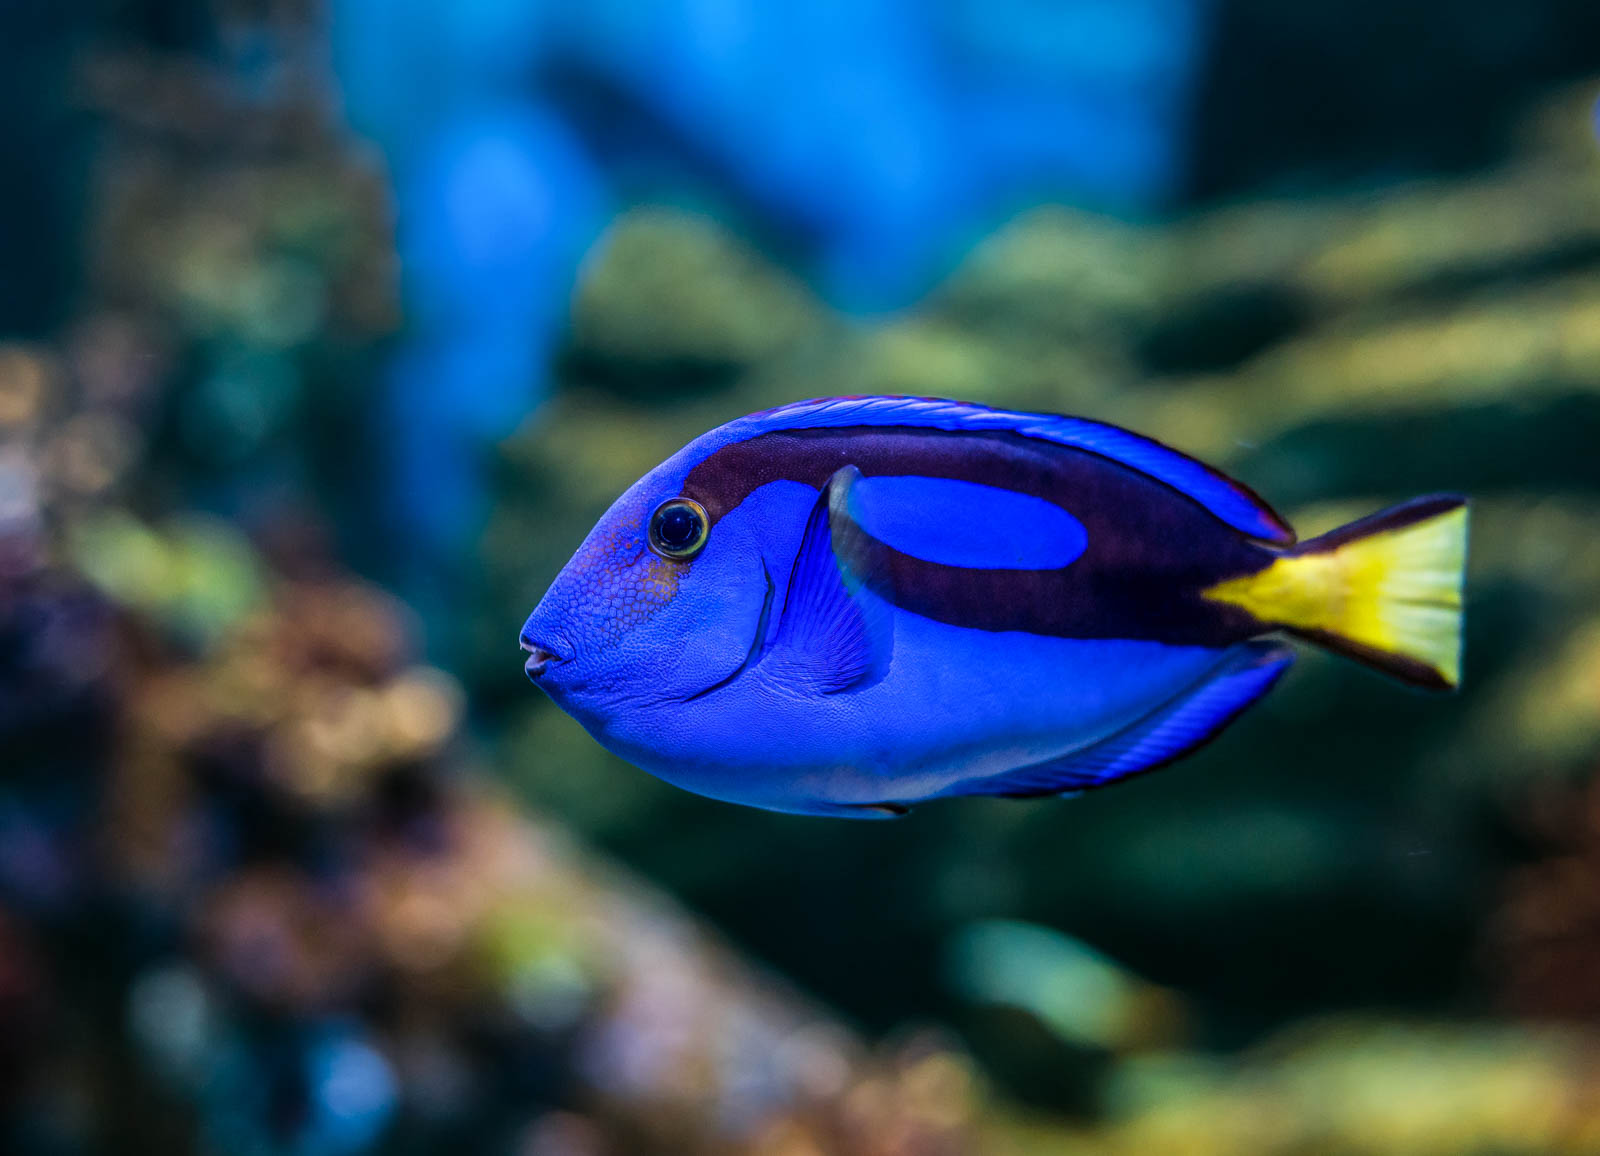 To protect coral reefs keep dory swimming shareamerica for Fish swimming video